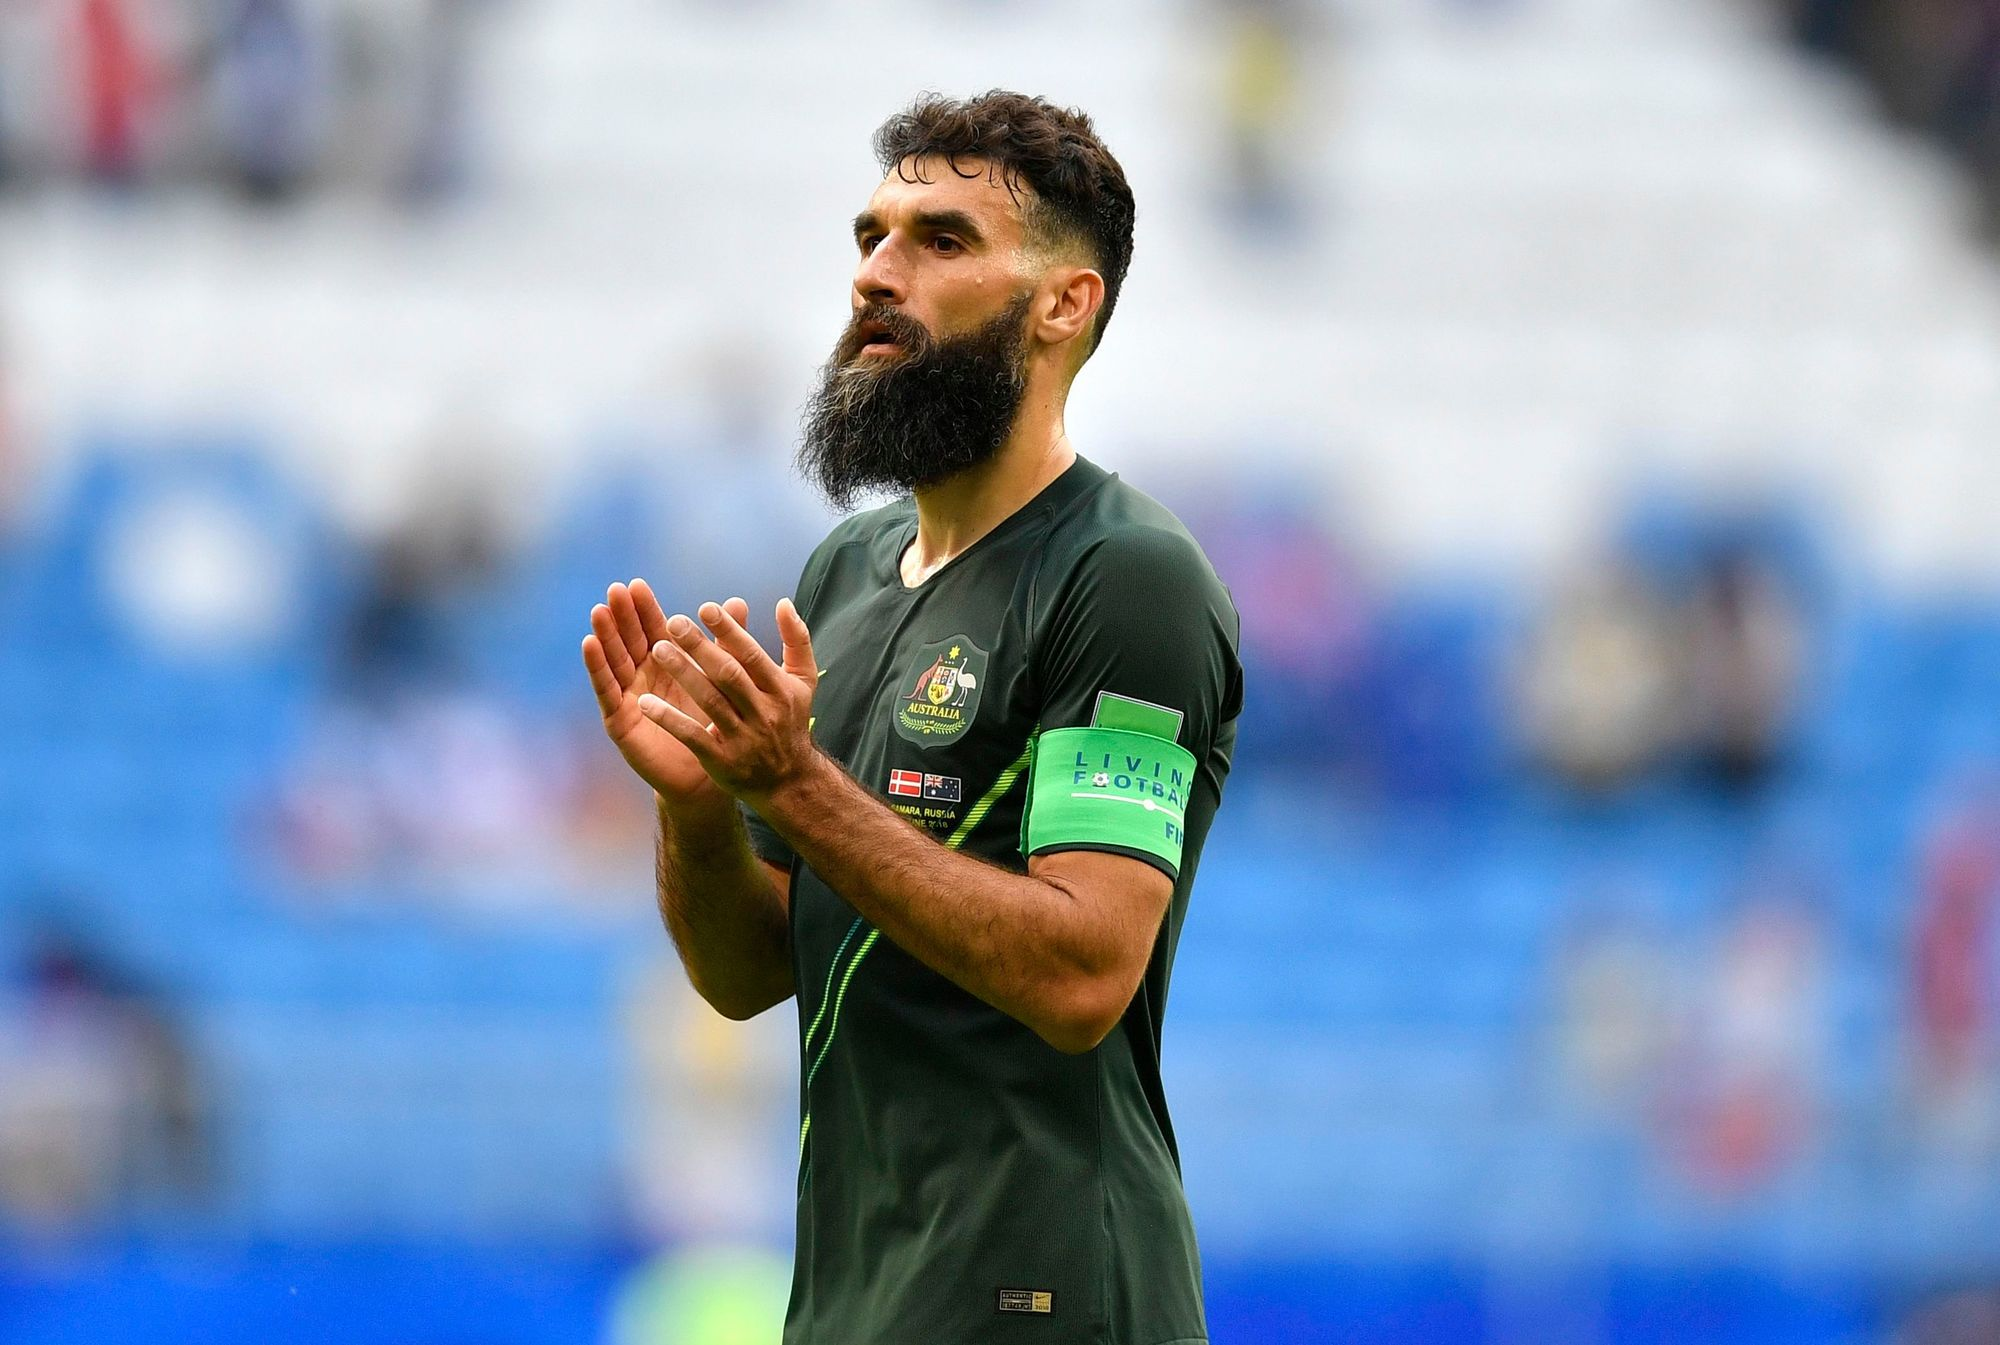 footballer hairstyles: mile jedinak dark brown undercut fade hair with long beard at world cup 2018